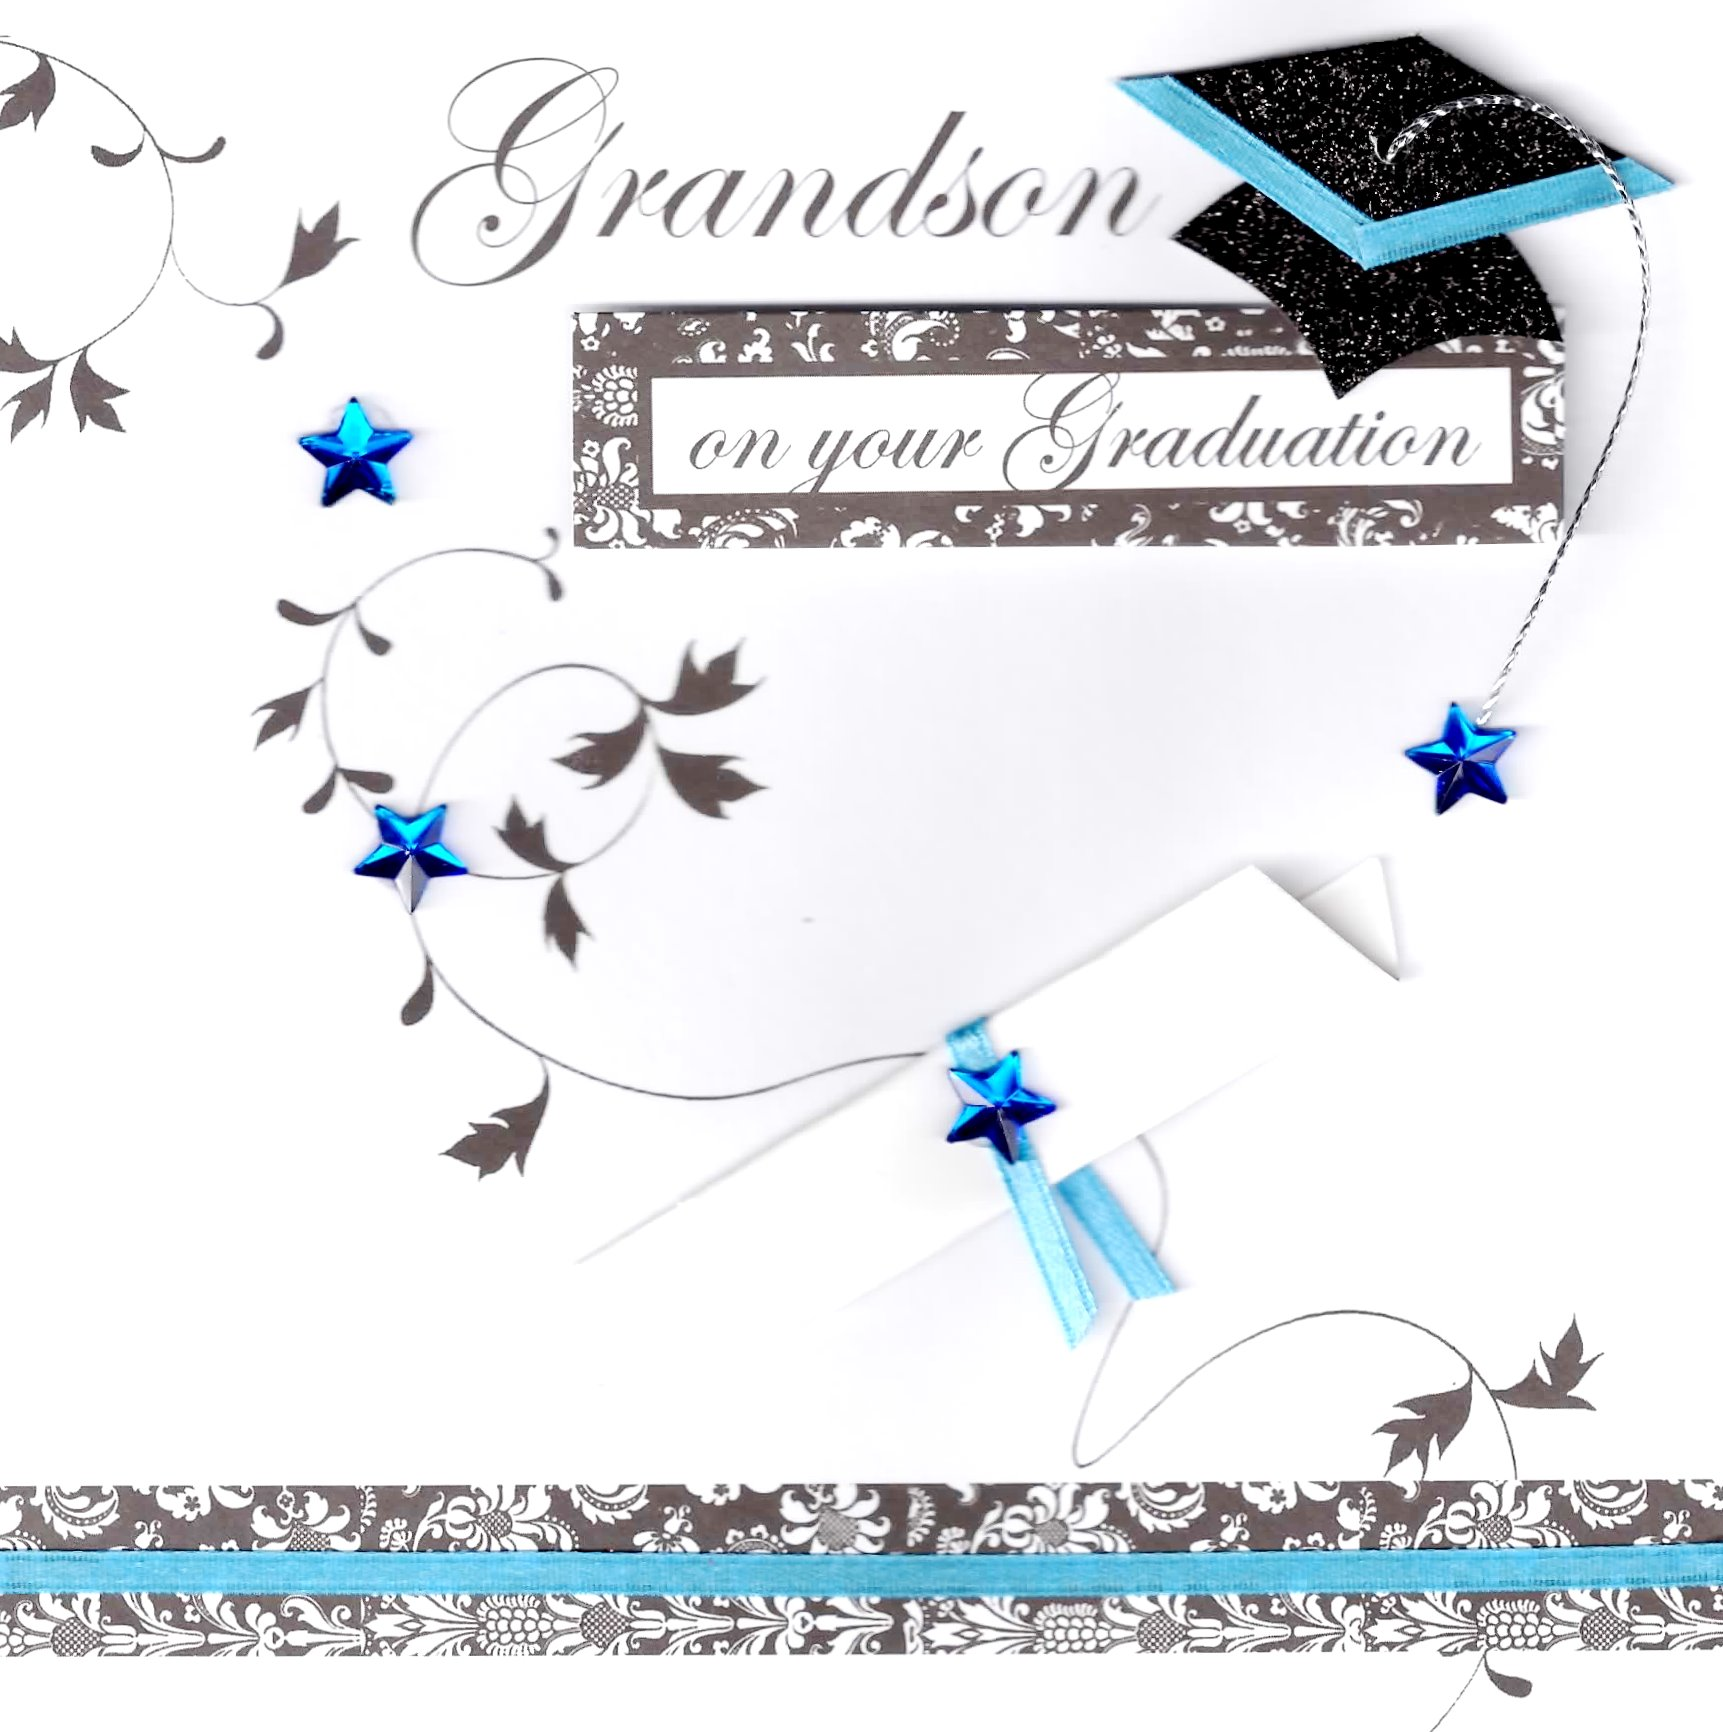 Grandson On Your Graduation Congratulations Greeting Card ...